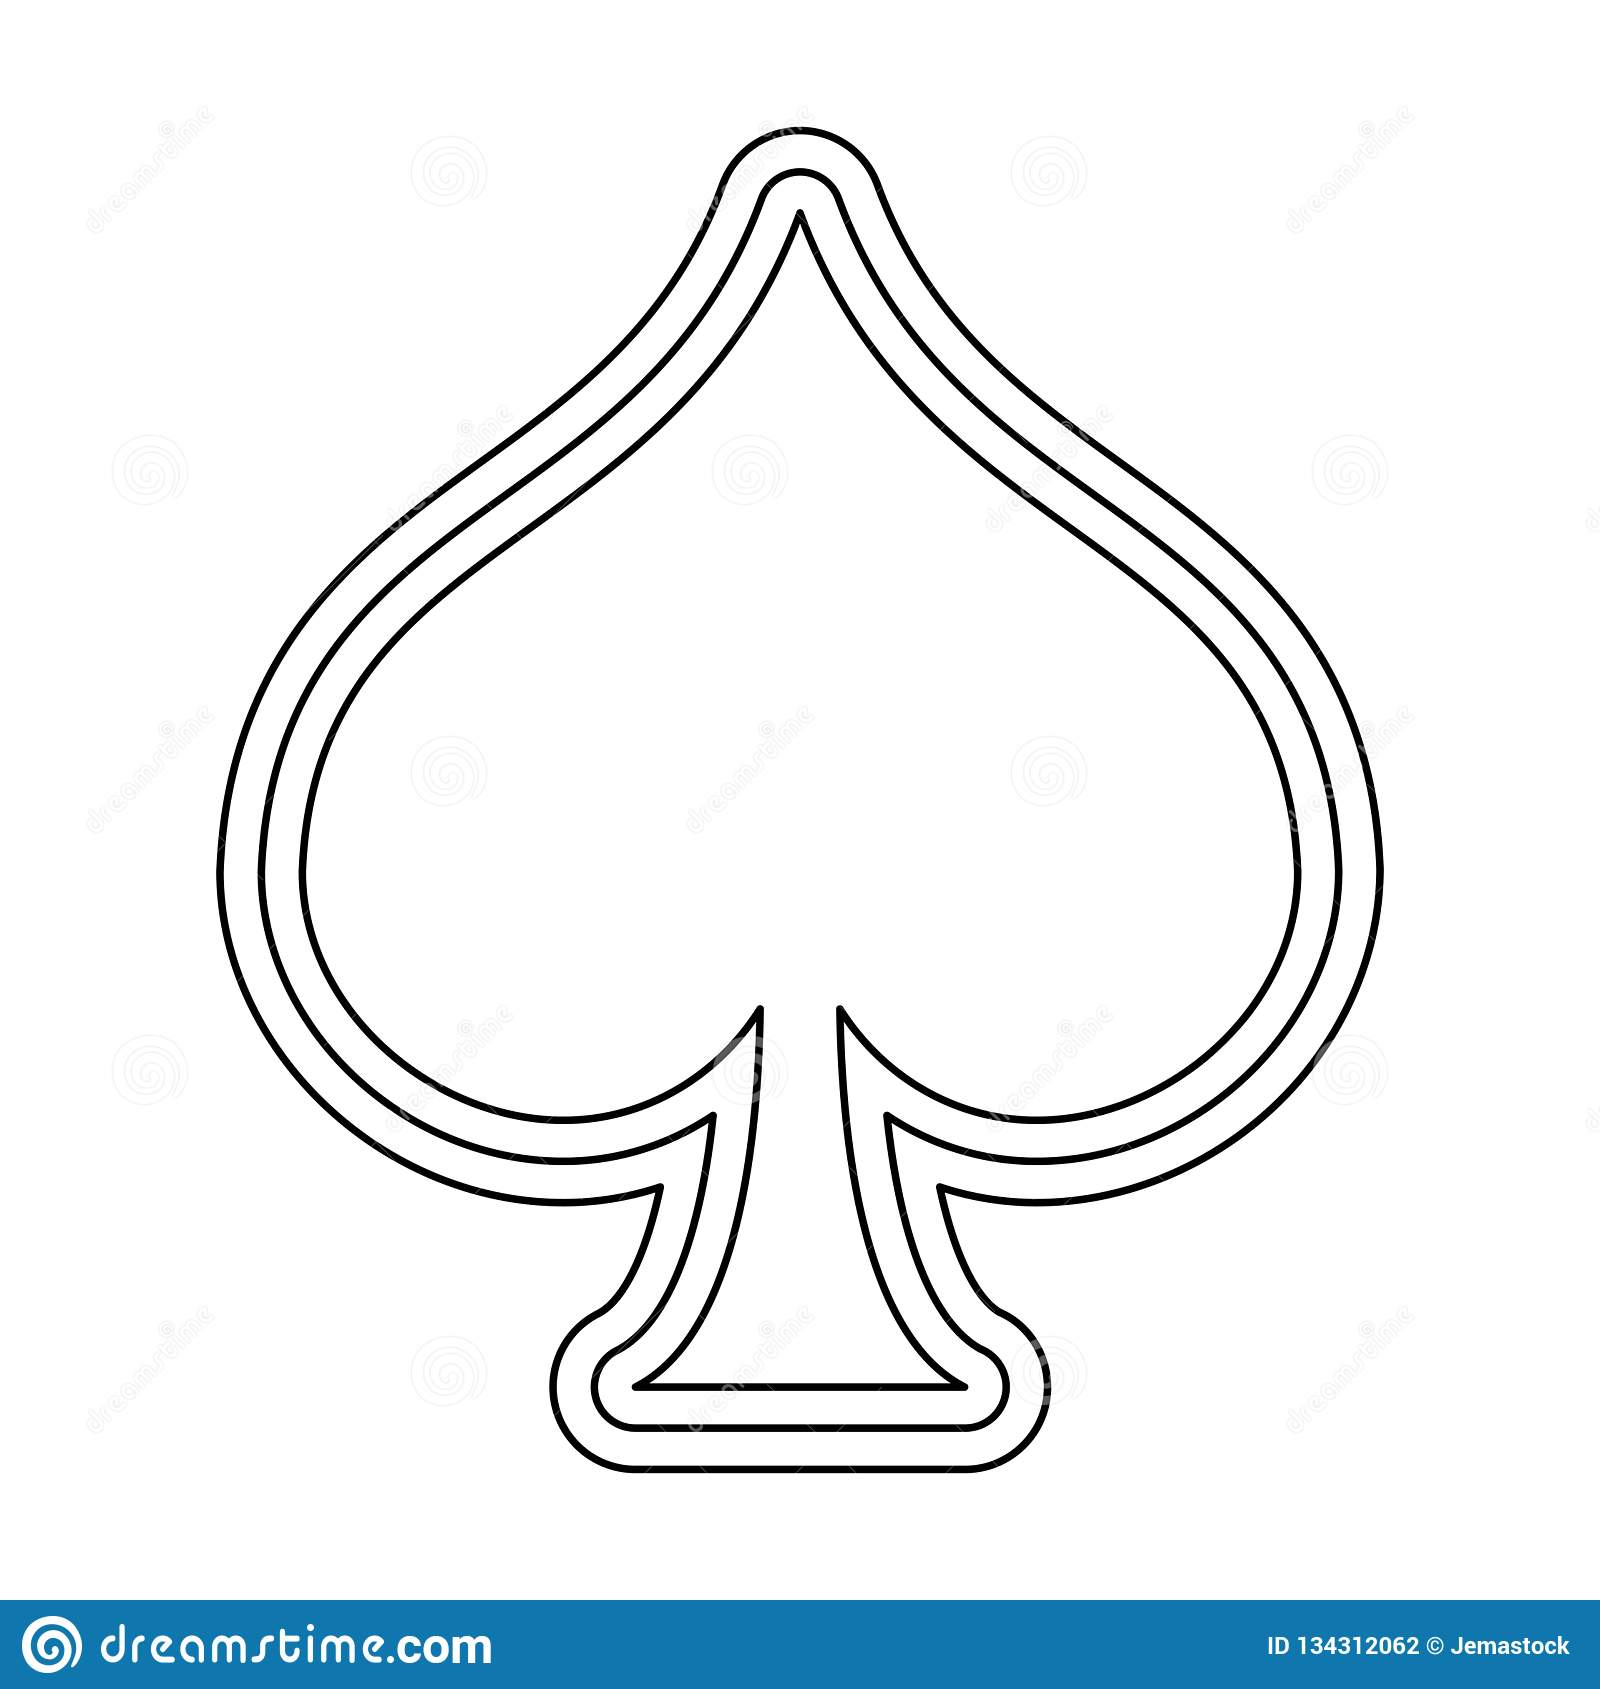 spade card white  Spade Card Symbol In Black And White Stock Vector ...